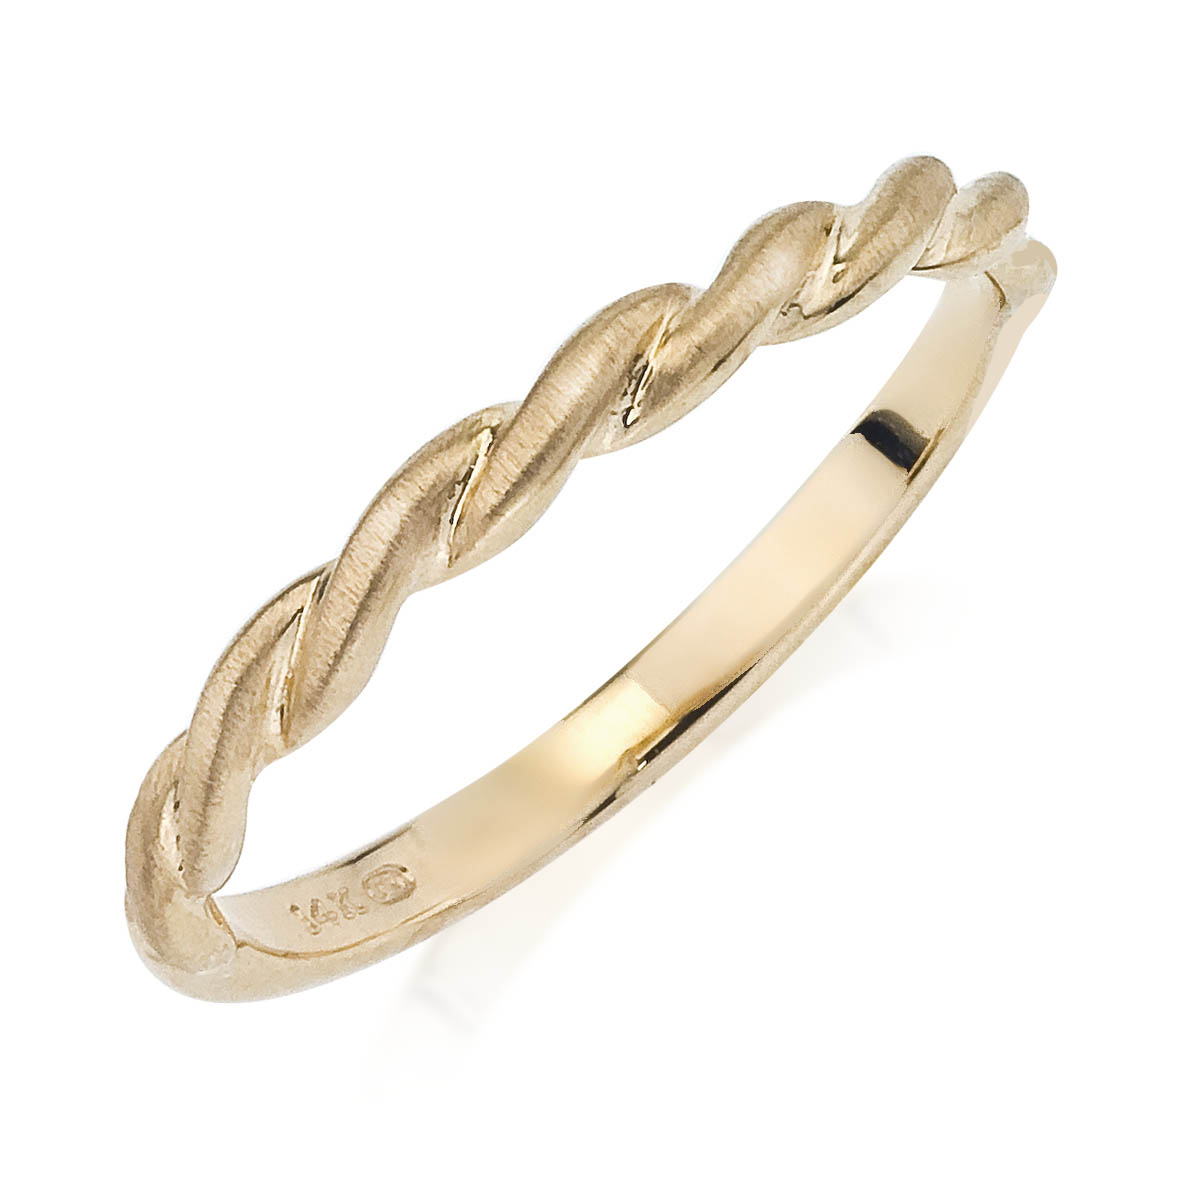 Gold Wedding Band - 14 Karat Yellow Gold Wedding Band